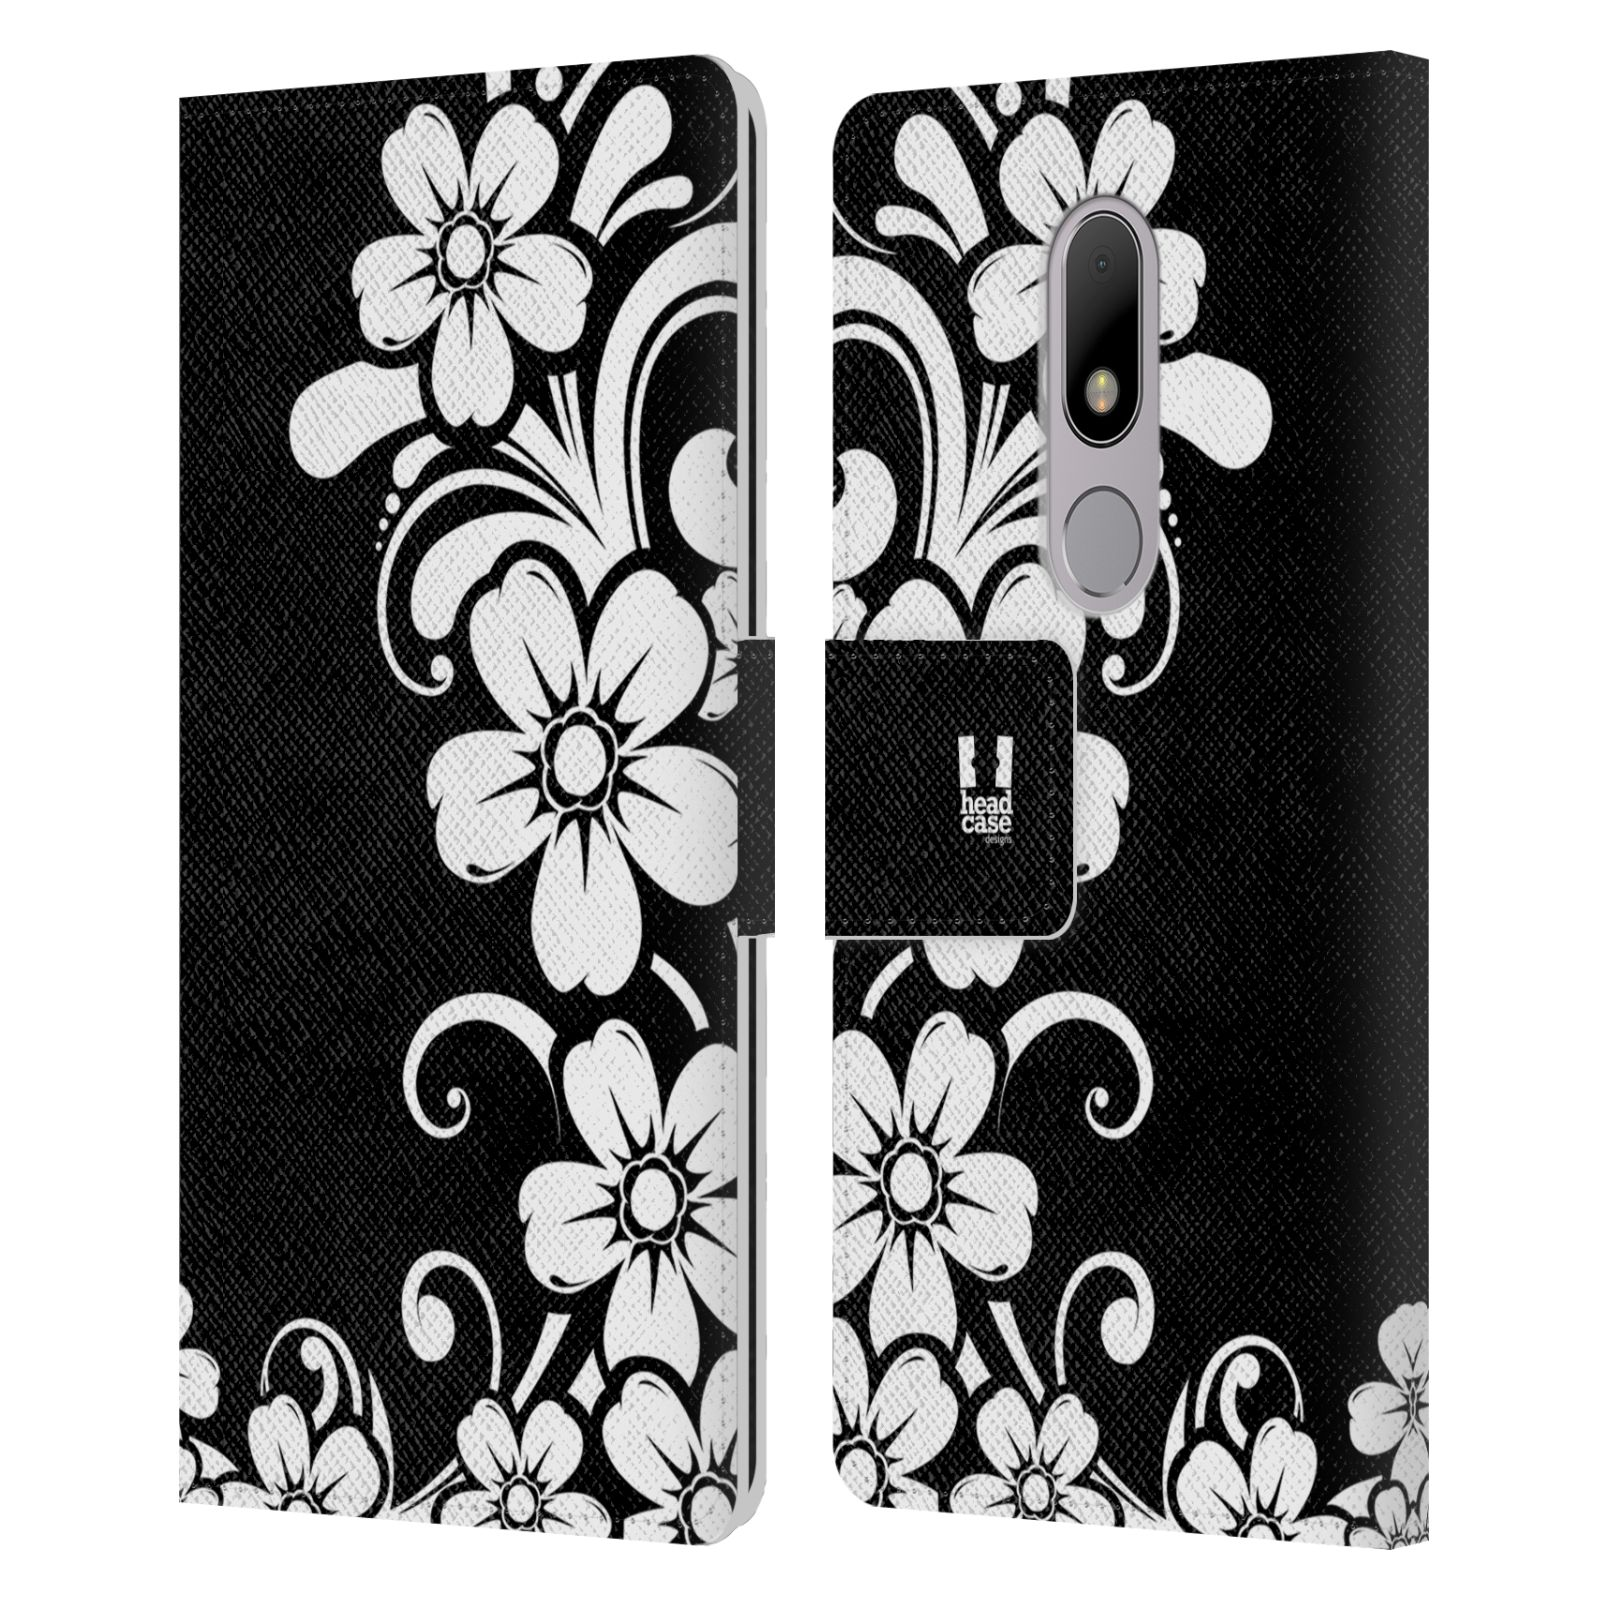 HEAD-CASE-DESIGNS-BNW-FLORAL-LEATHER-BOOK-WALLET-CASE-COVER-FOR-MOTOROLA-MOTO-M